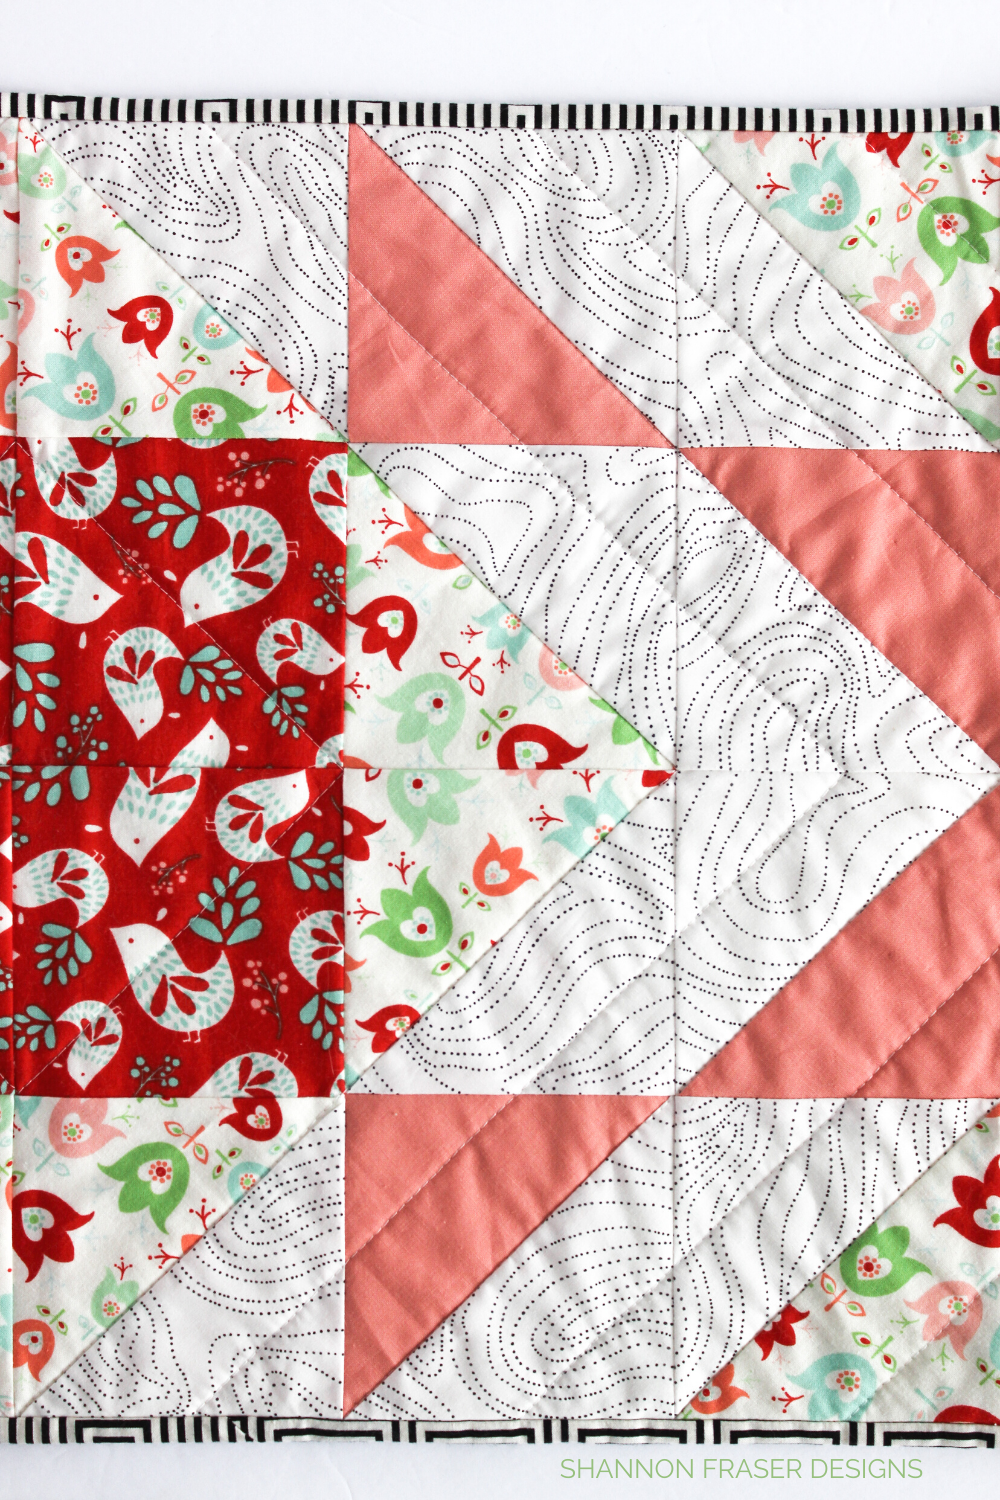 Quilting detail on the holiday scandinavian style Modern Aztec quilted table runner | Shannon Fraser Designs #quilting